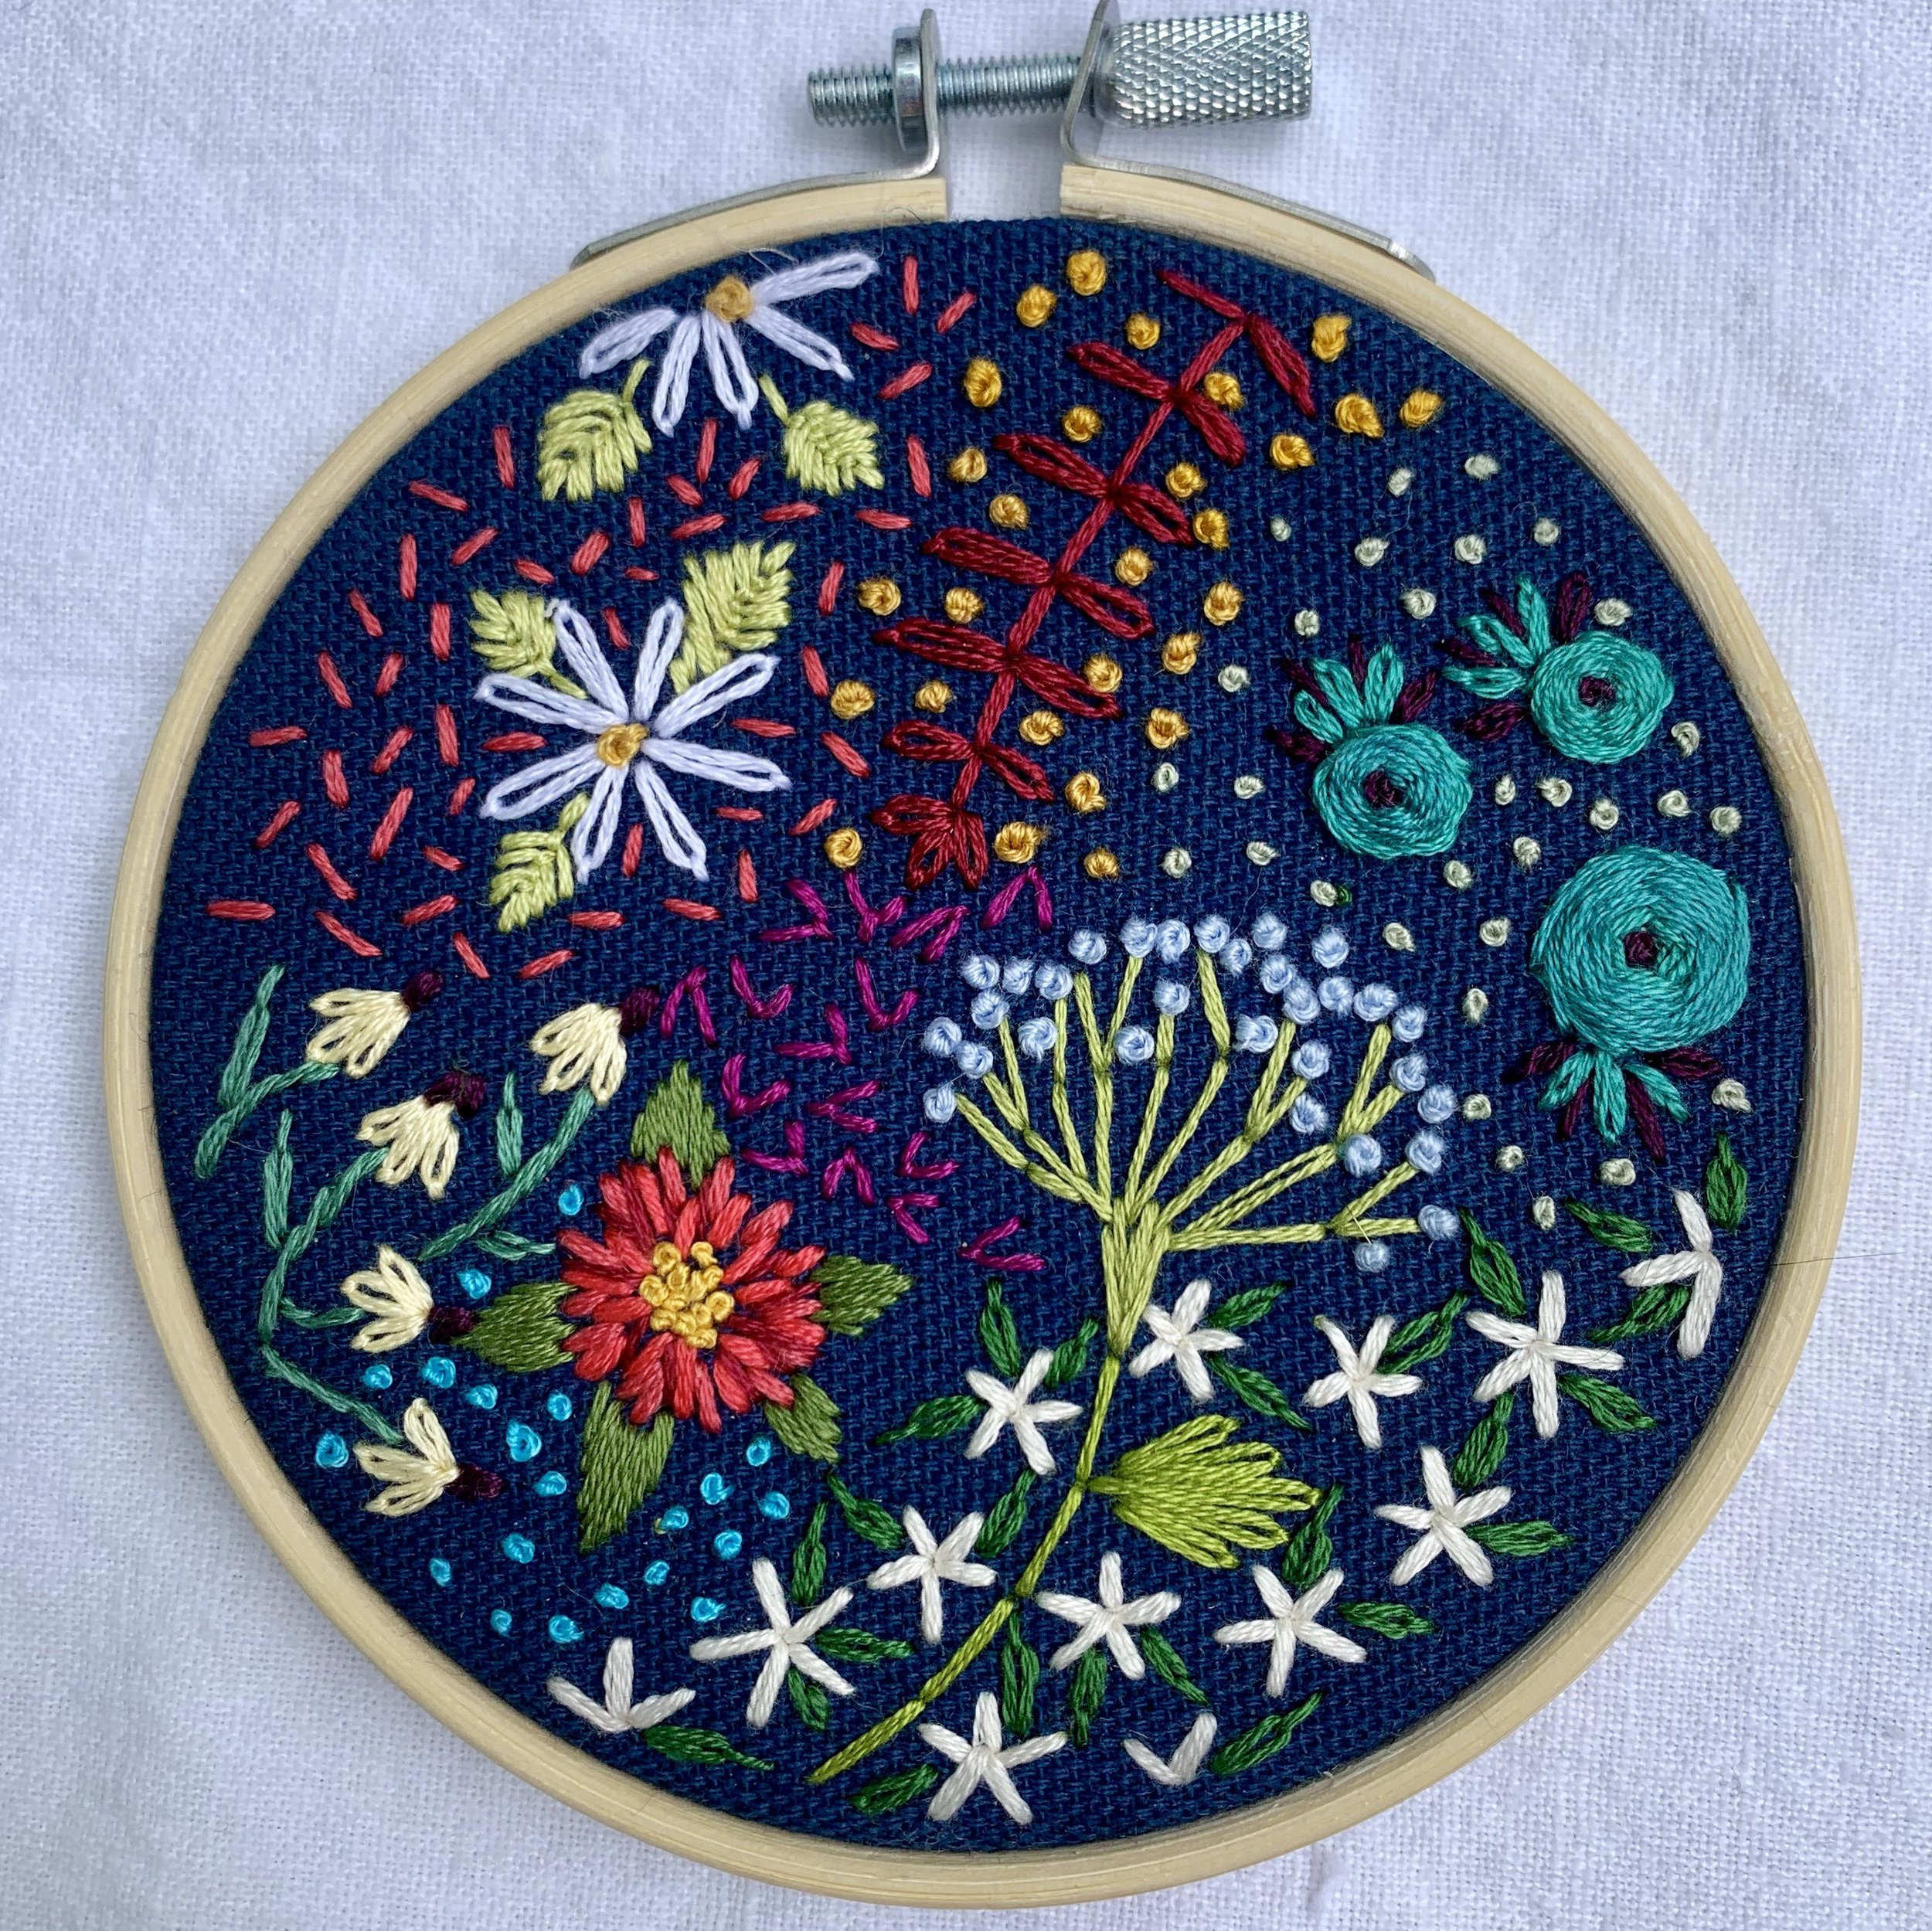 Floral Embroidery - Participants will create modern botanical designs using embroidery techniques. Learn all of the best tips and trick to achieve your desired results using the most common stitches and knots. There is no embroidery experience necessary! All you need is a little patience and enthusiasm for making.All materials are provided.Instructor: Jen JanhevichWorkshop Fee: $38 per person, minimum 5, maximum 12